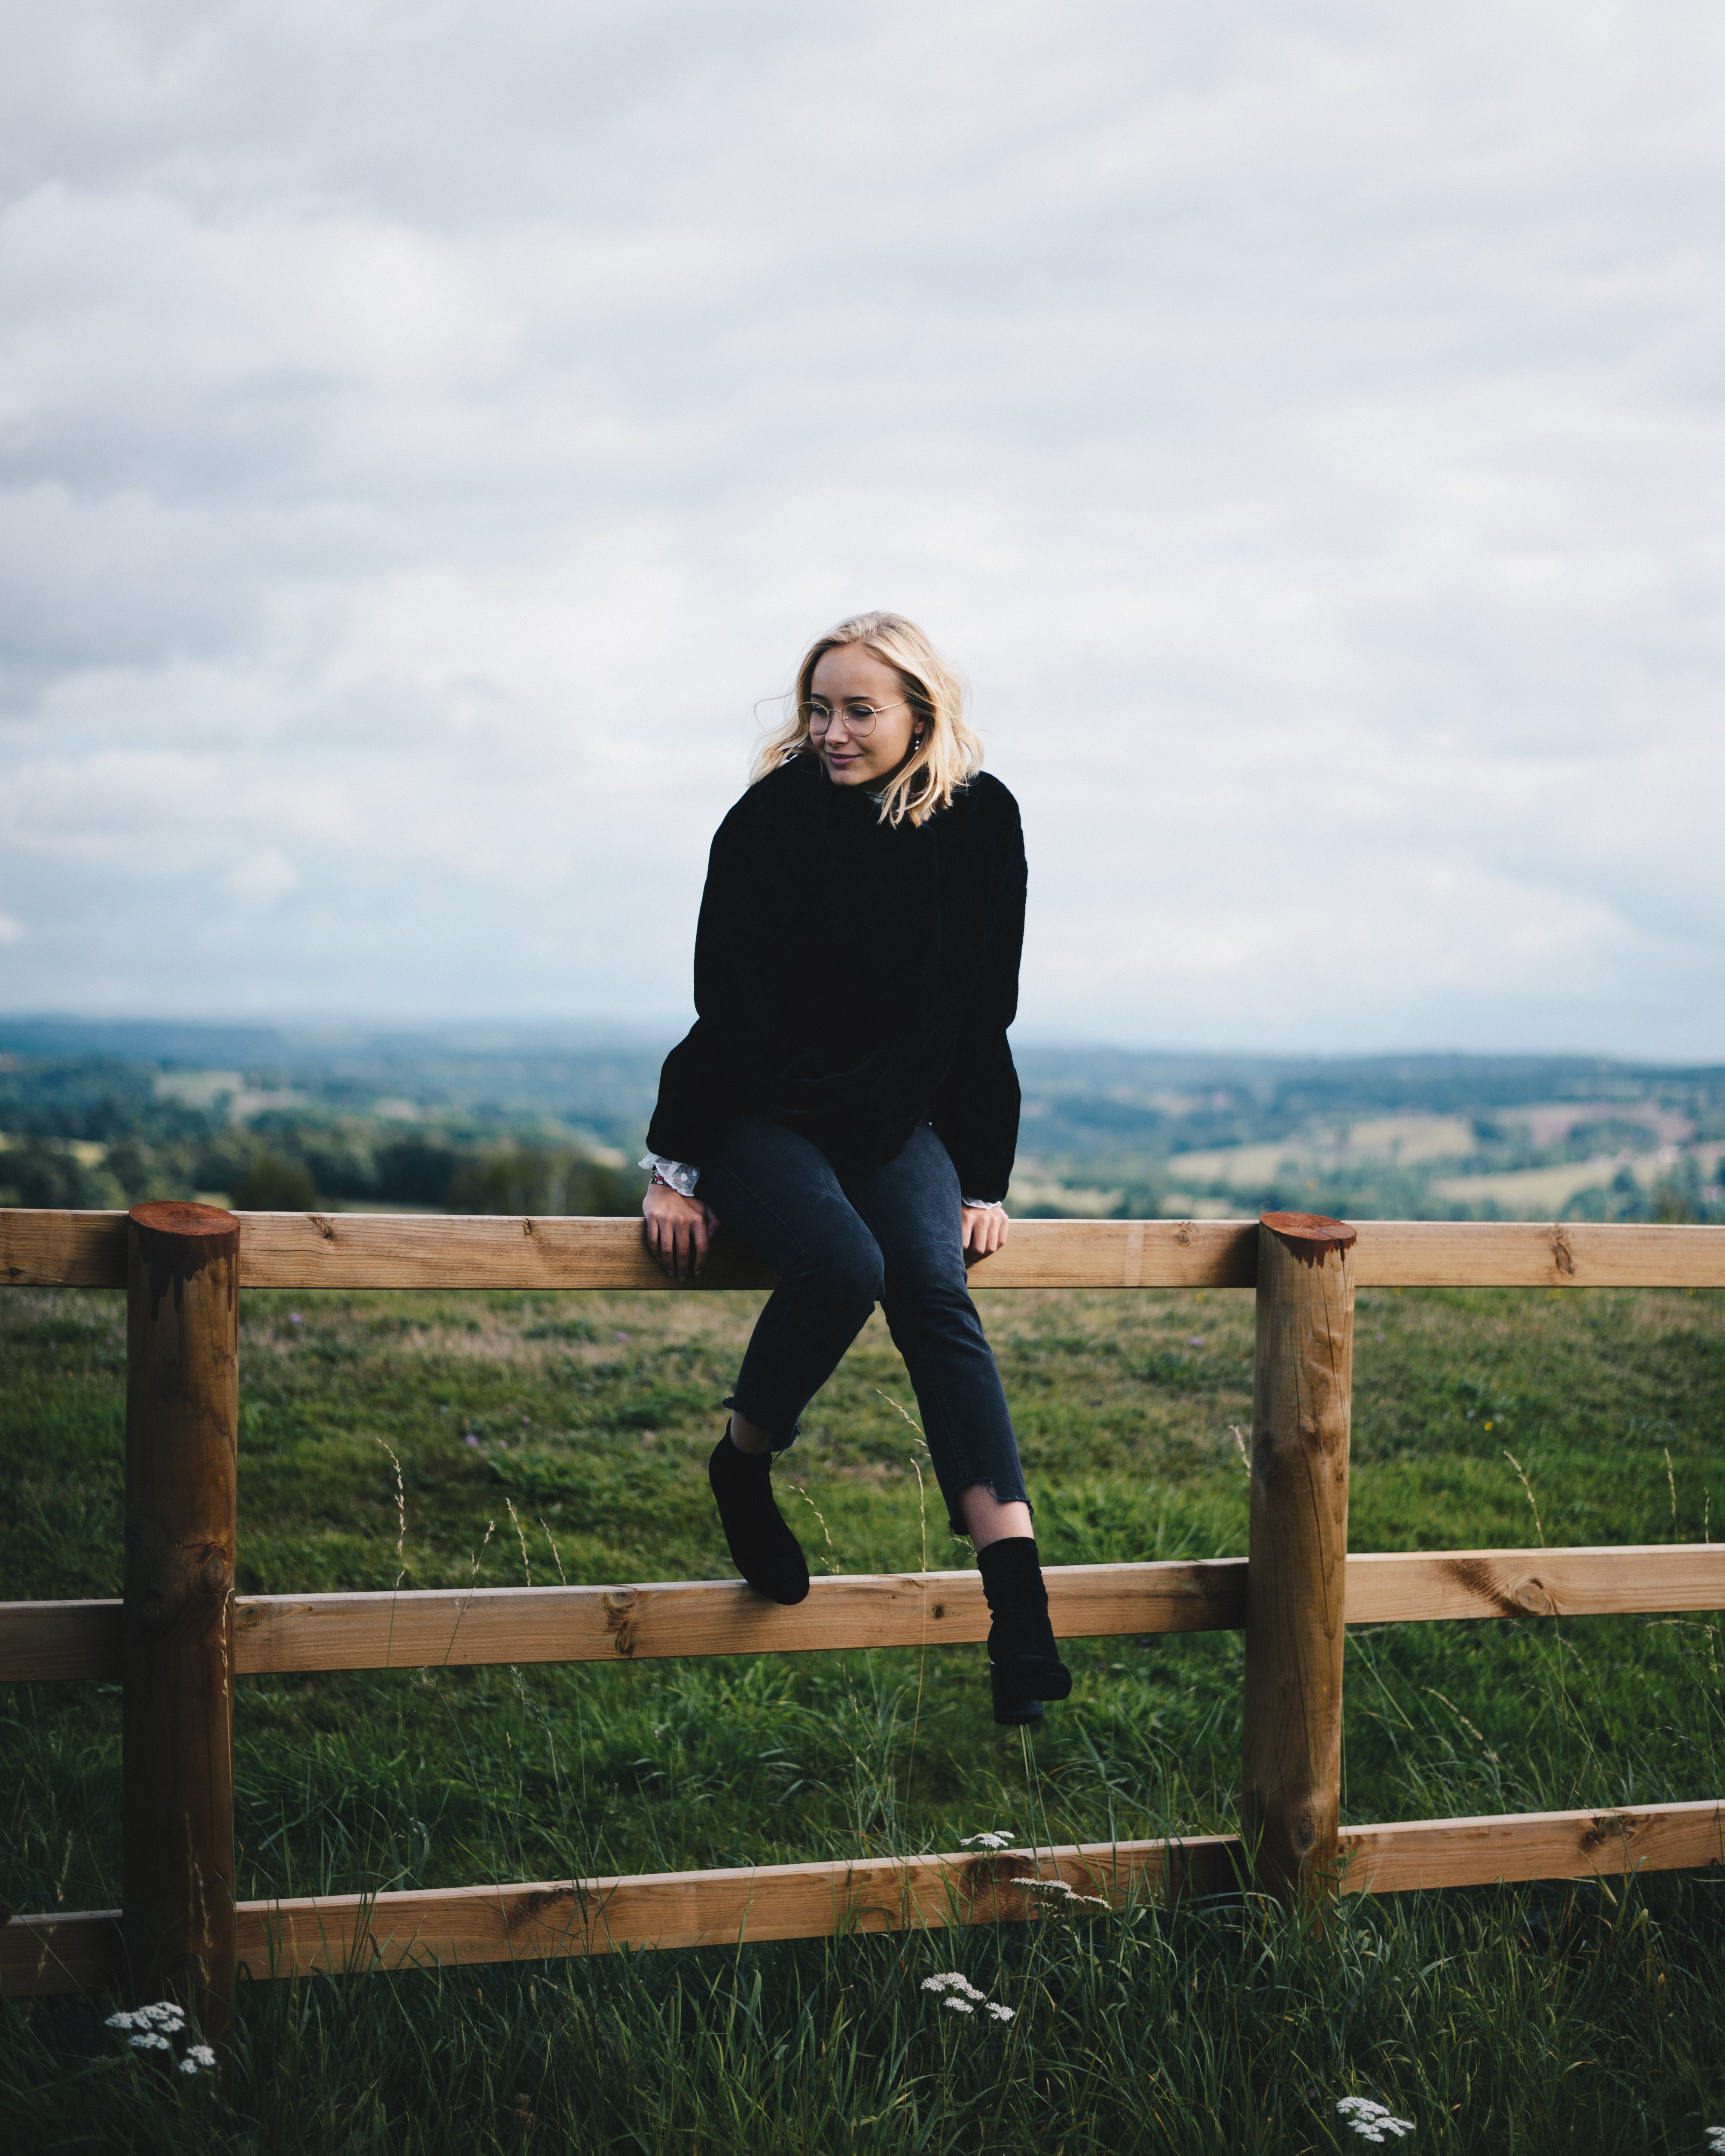 Photo of Woman Sitting on Wooden Fence